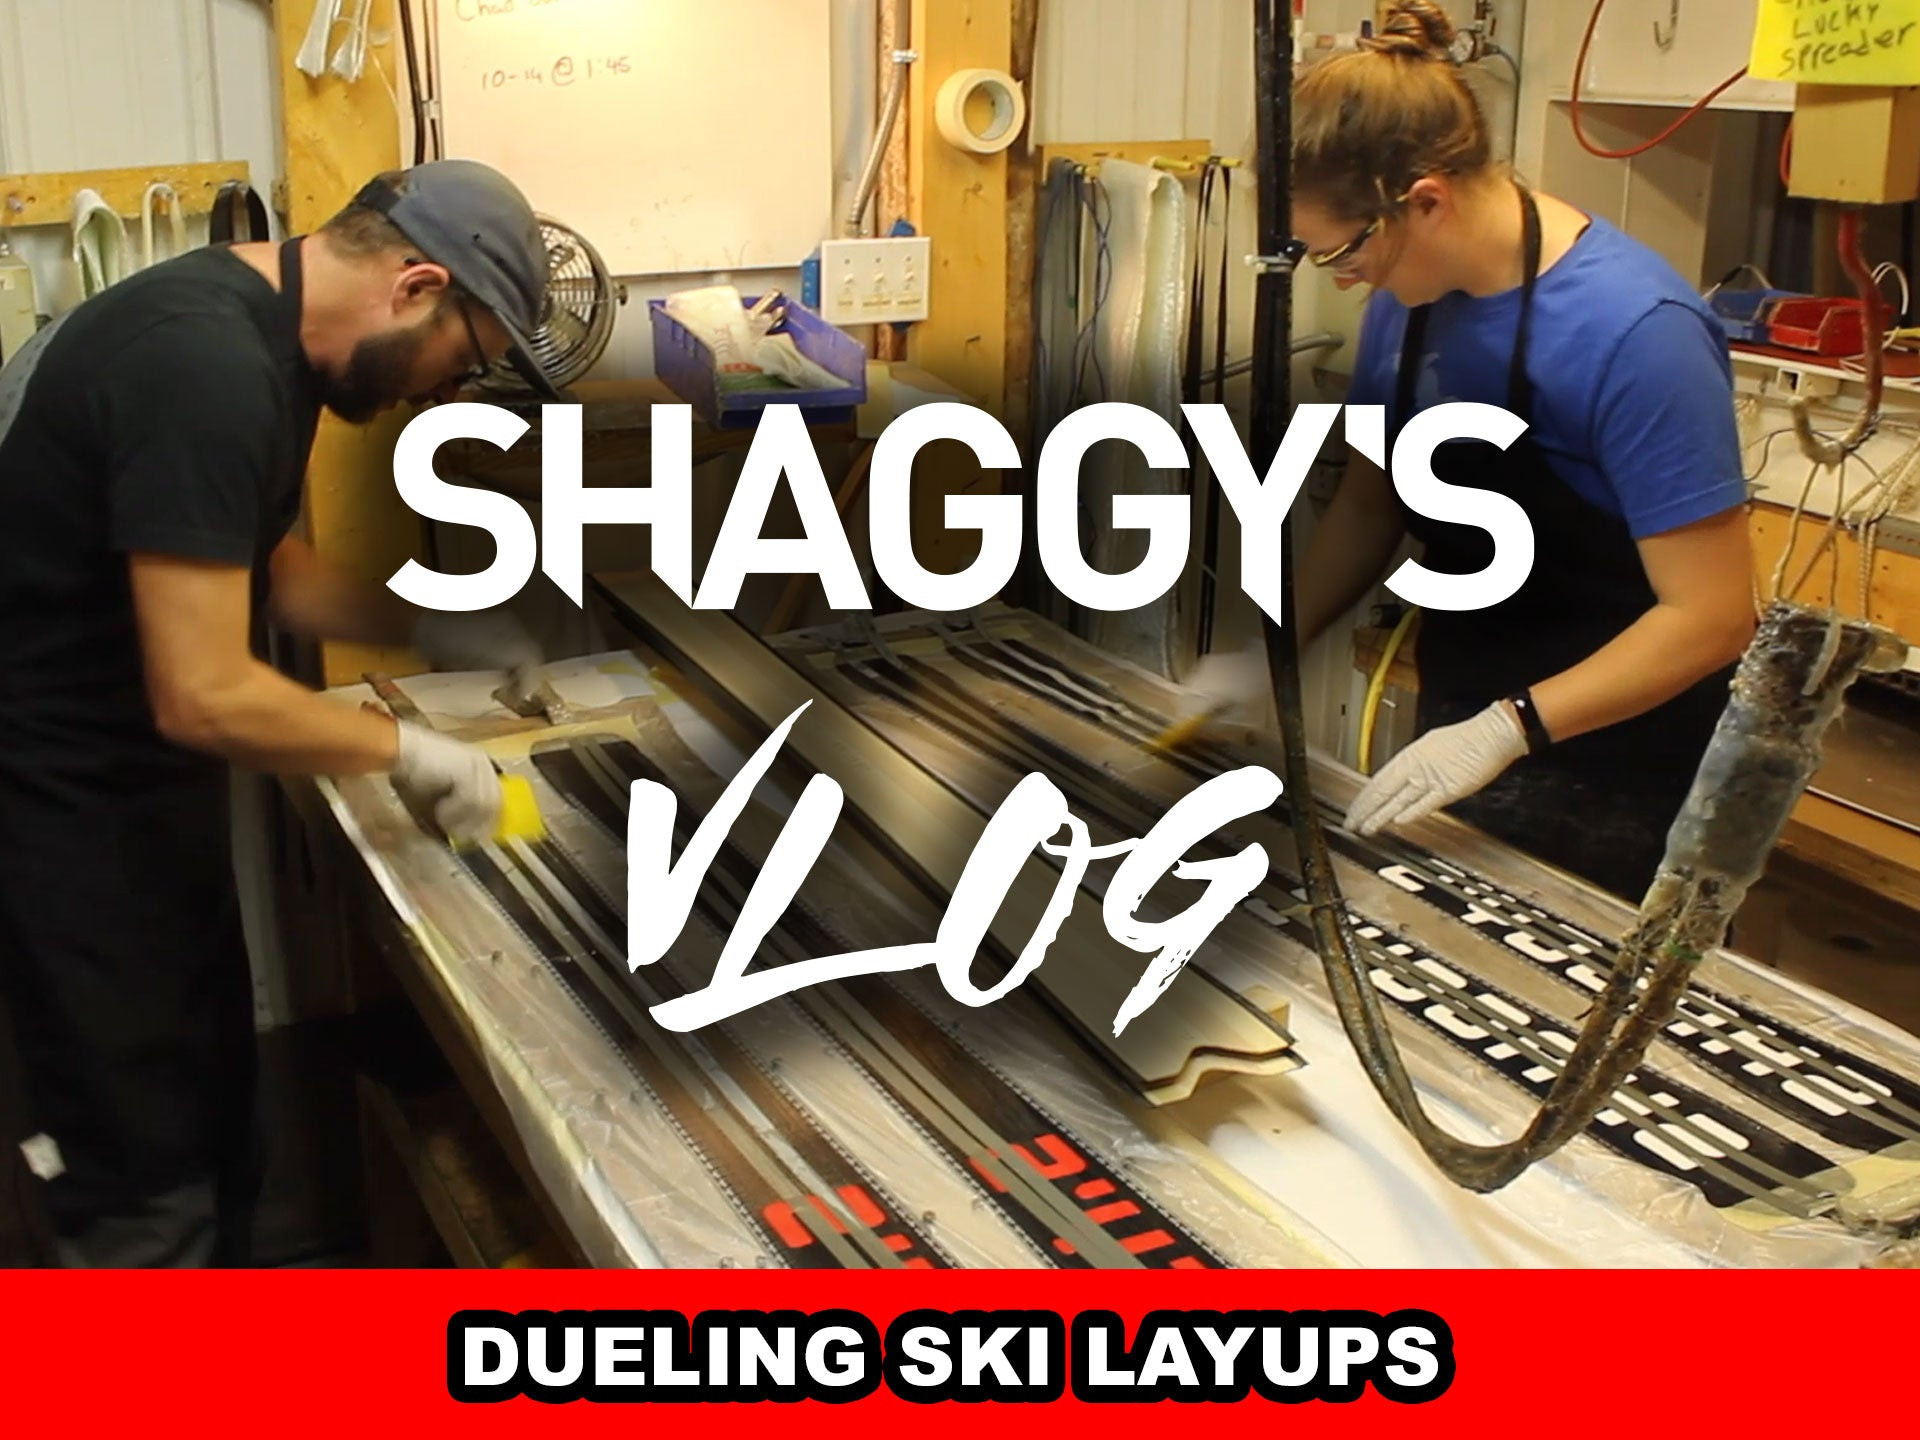 VLOG 008 - A DAY AT THE SKI FACTORY: PART 2